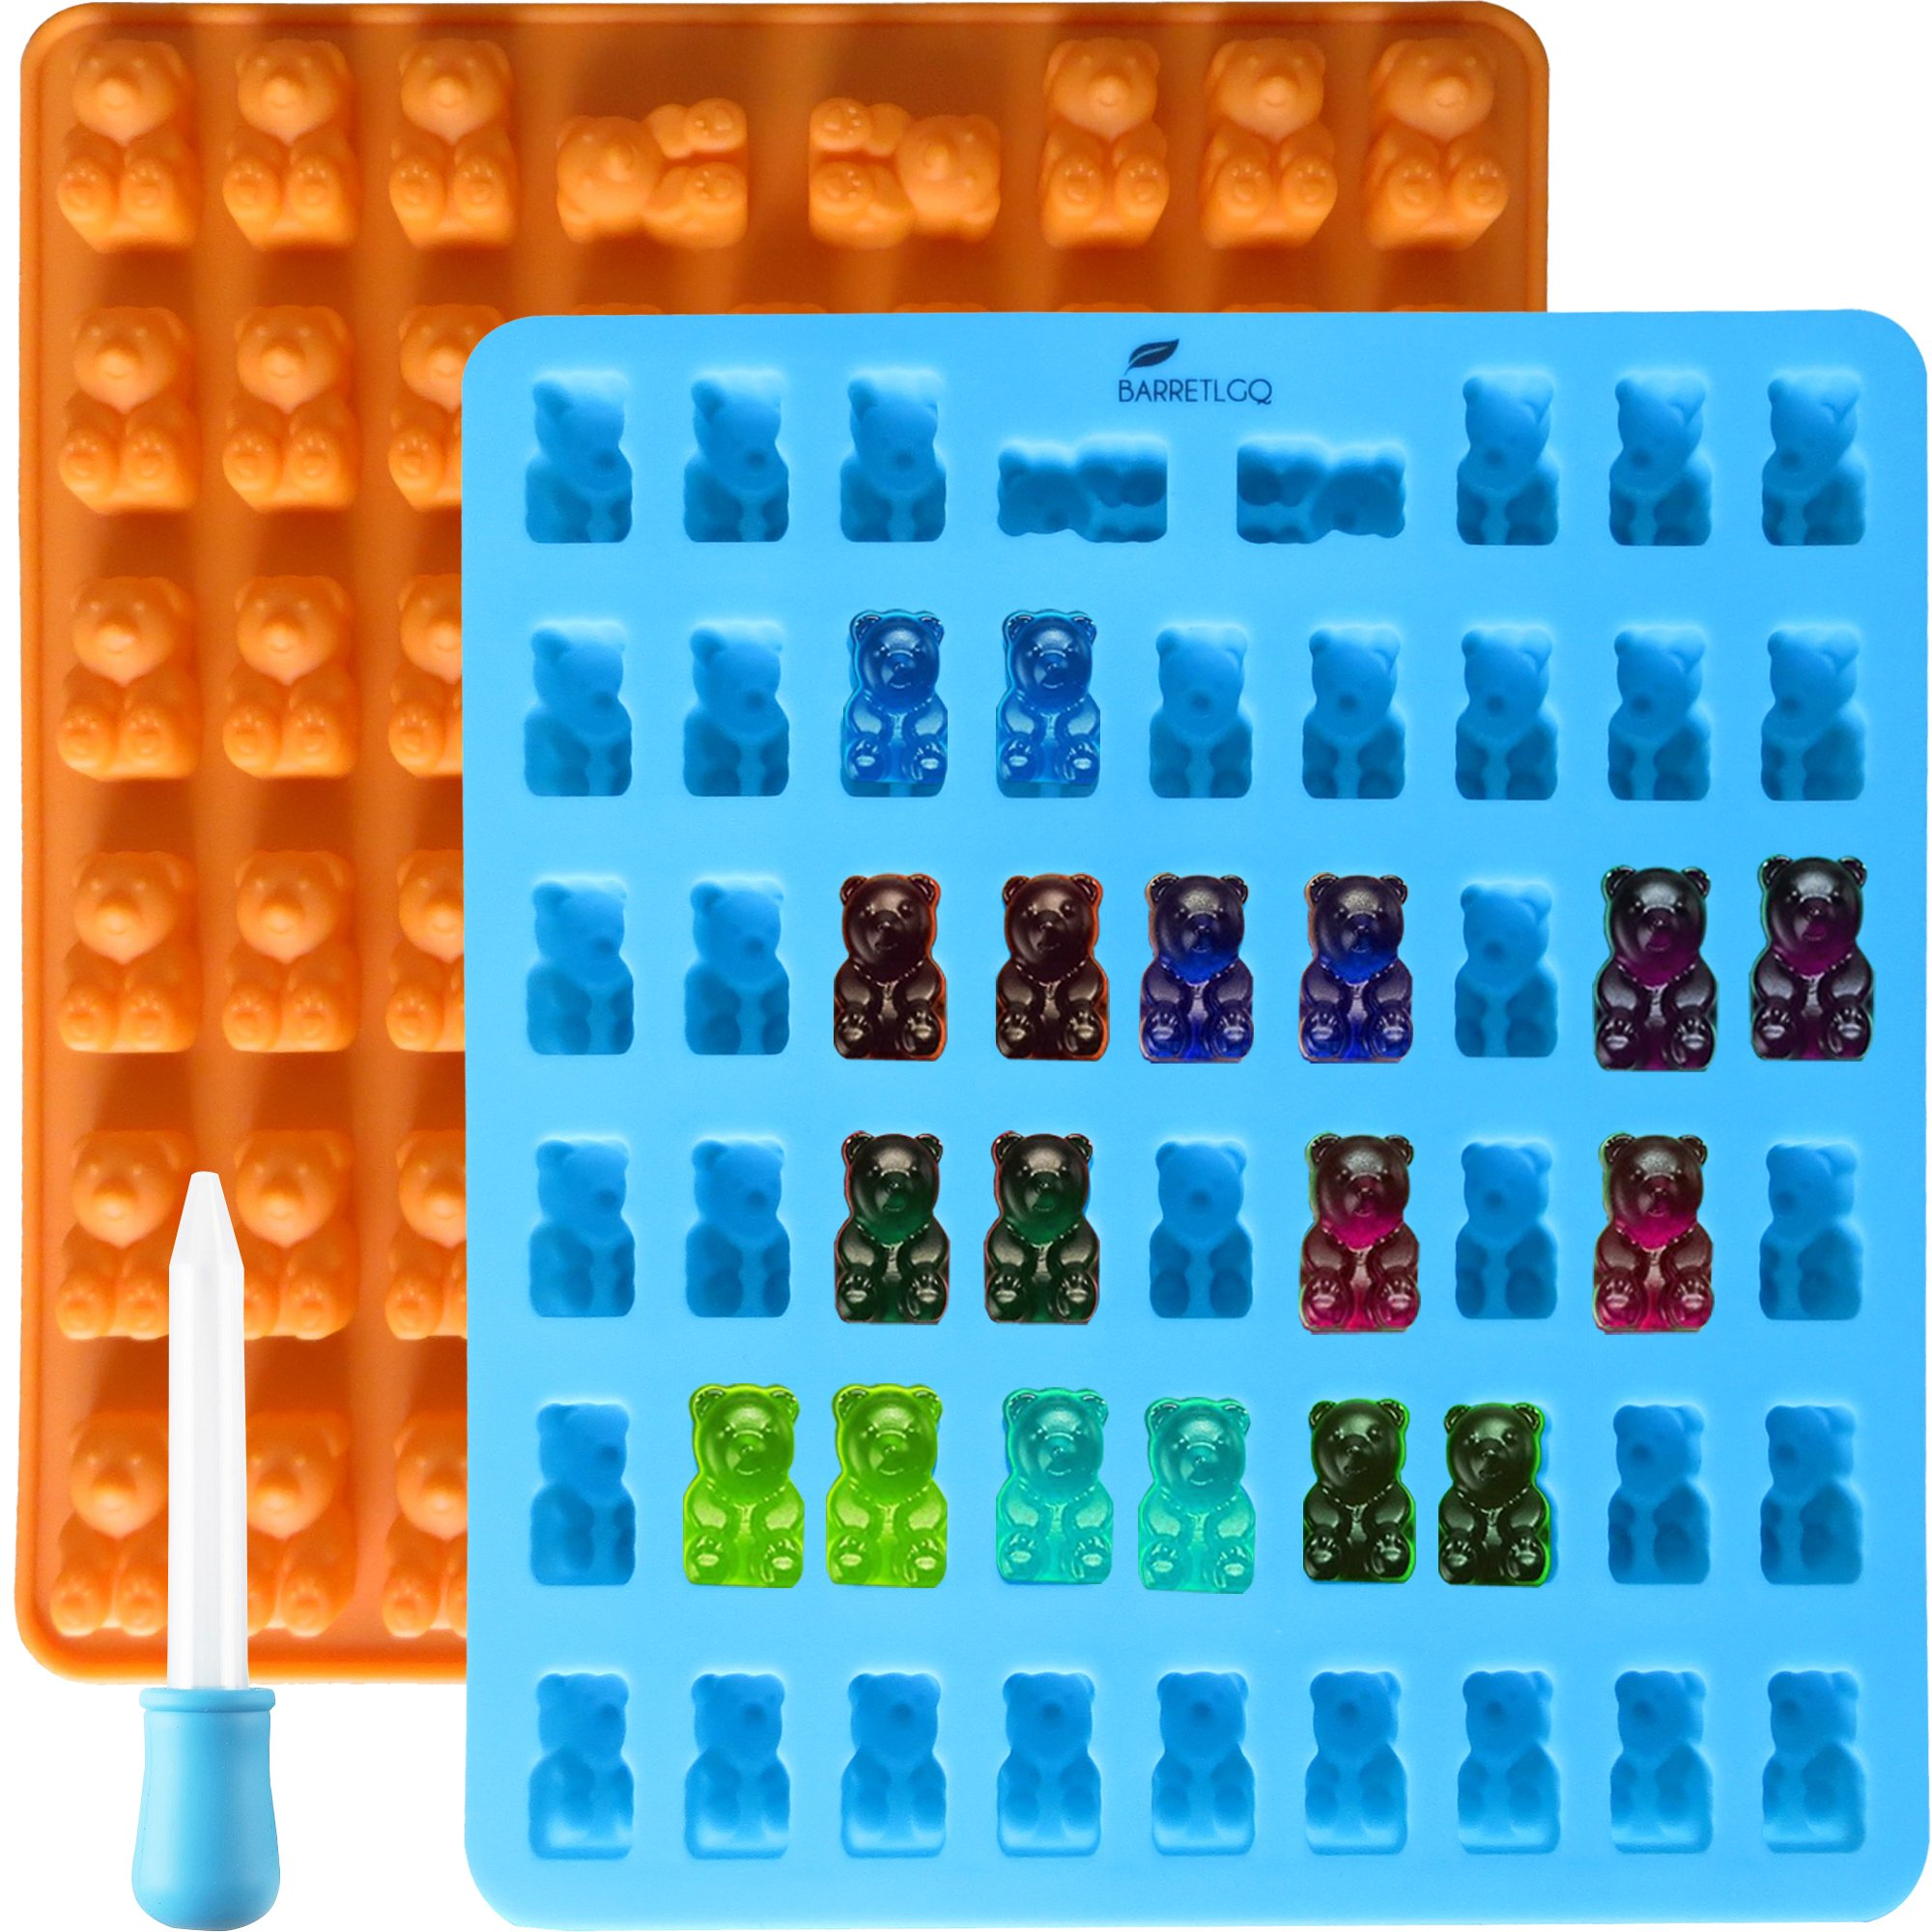 2 Pack 53 Cavity Silicone Gummy Bear Mold with a Dropper Making Gummy Candy Chocolate with Your Kids Together